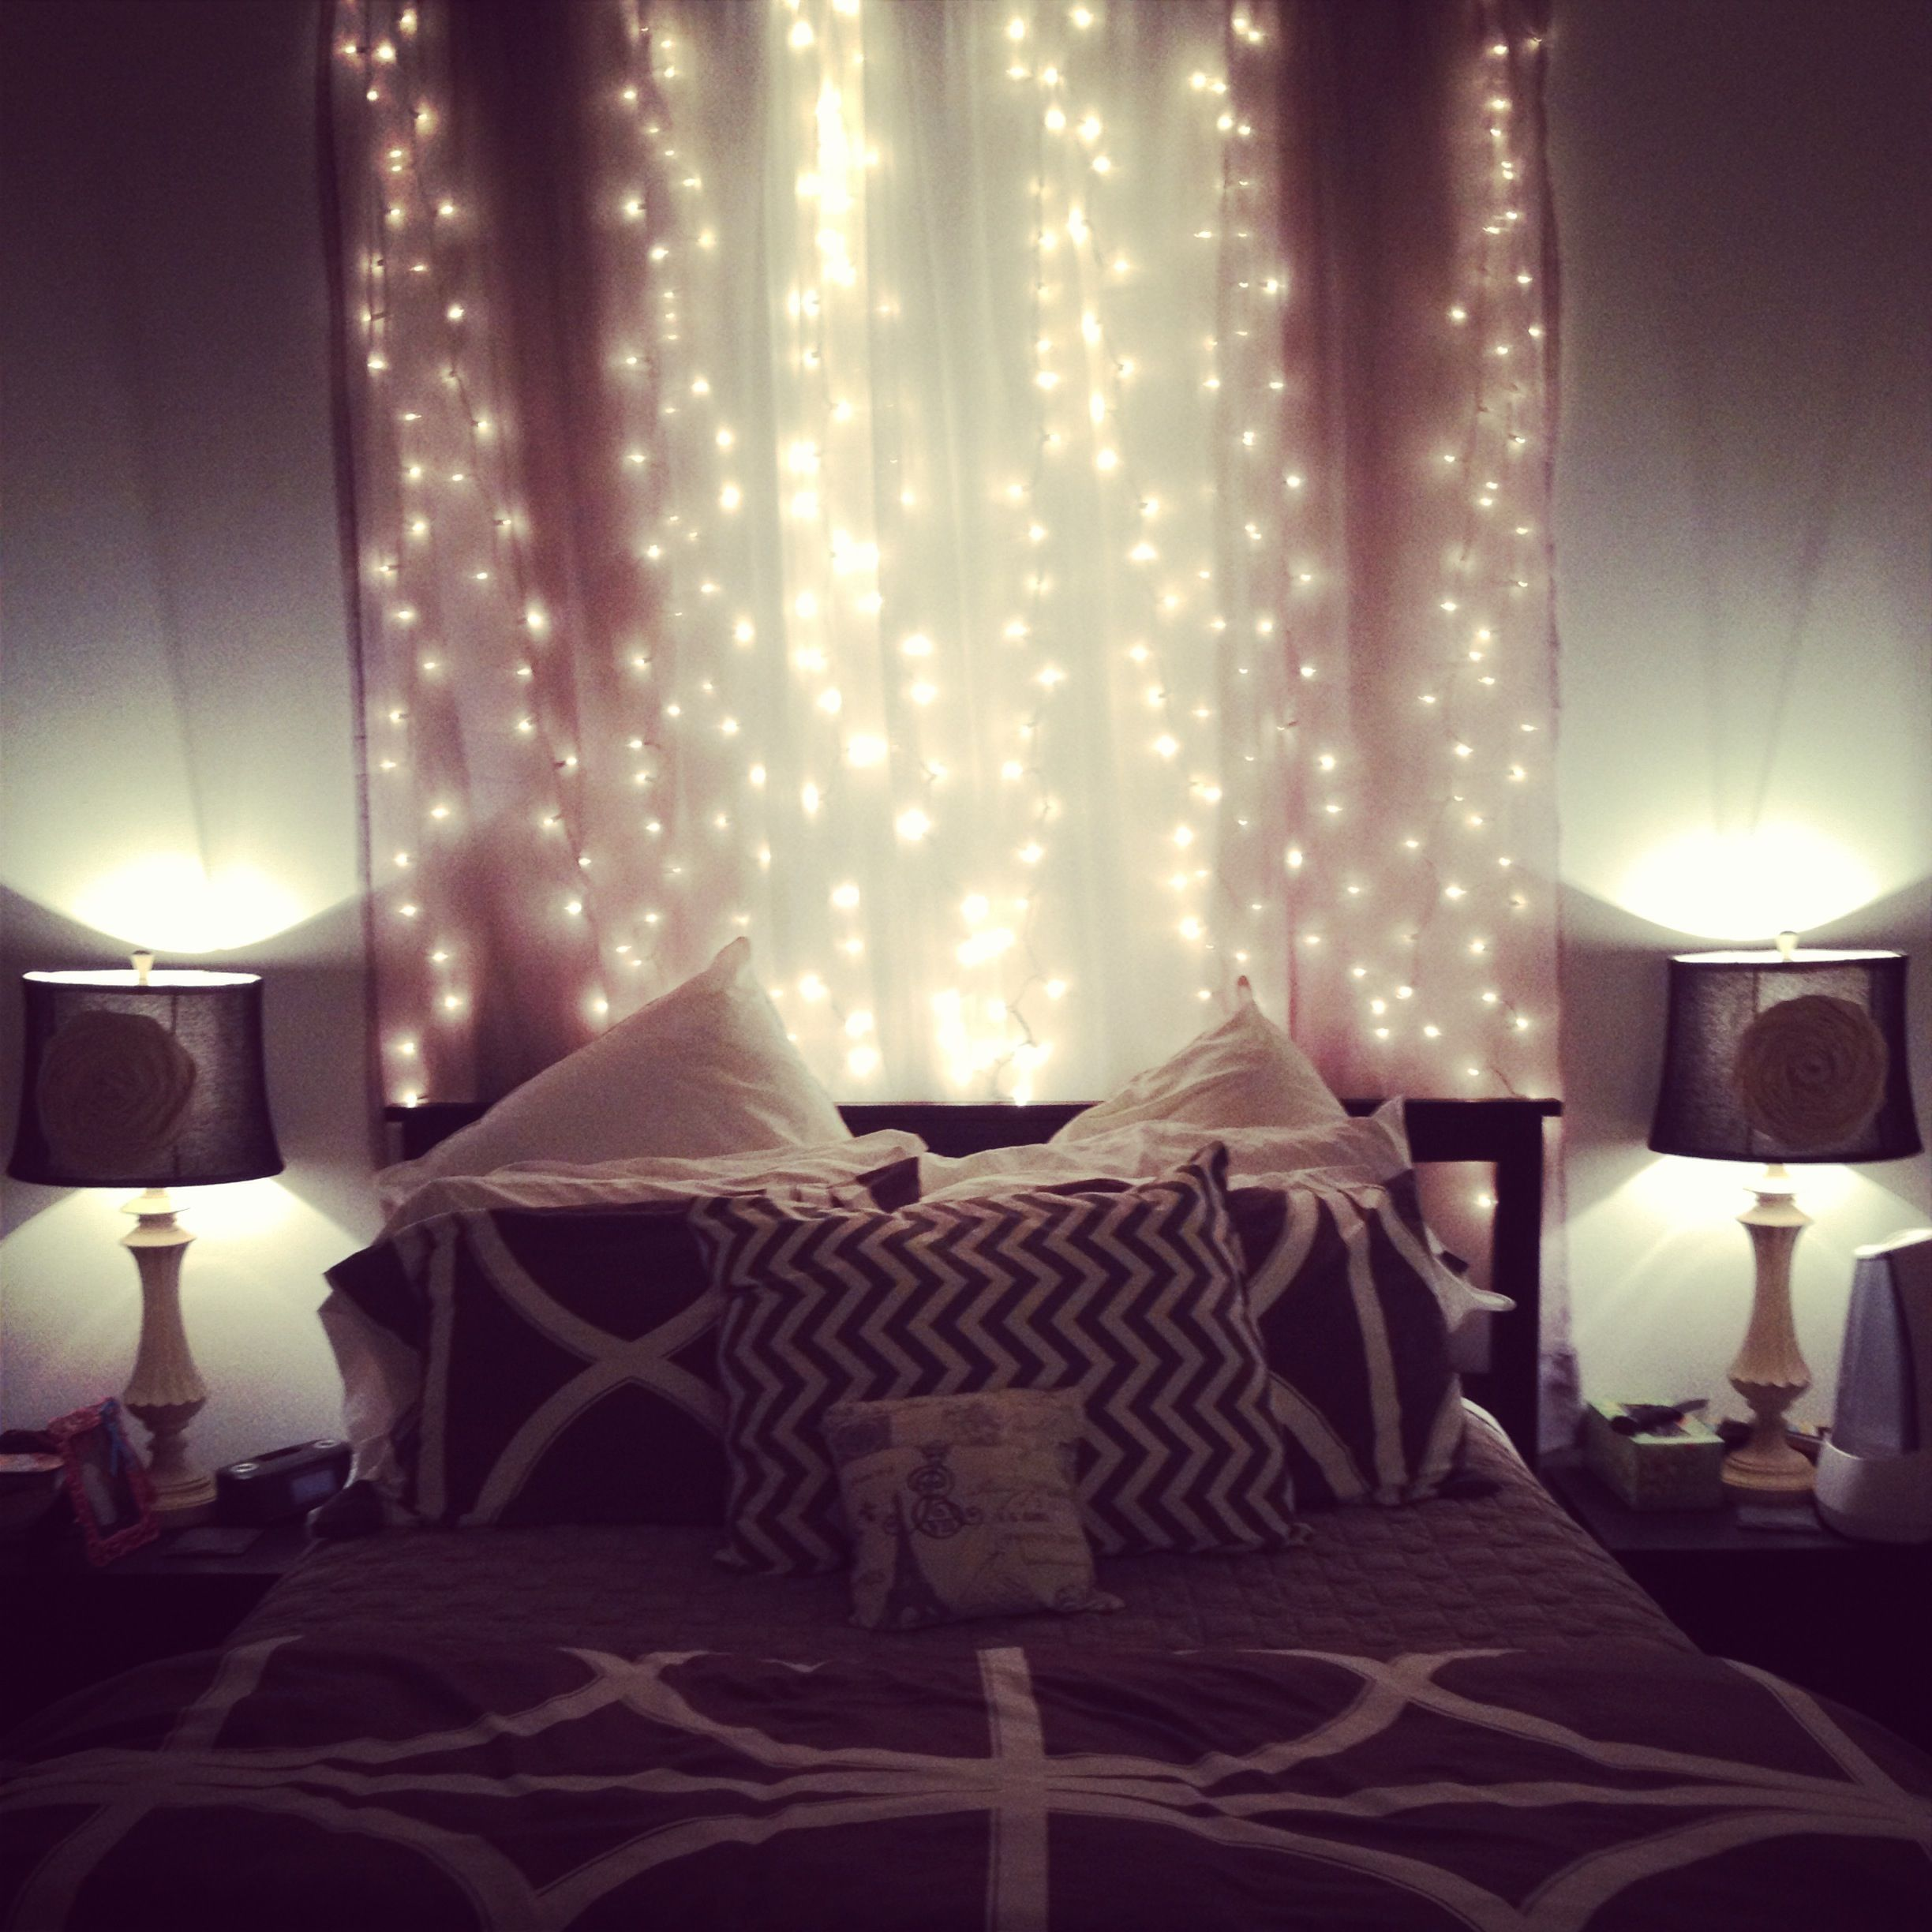 Fairy Lights In The Bedroom...